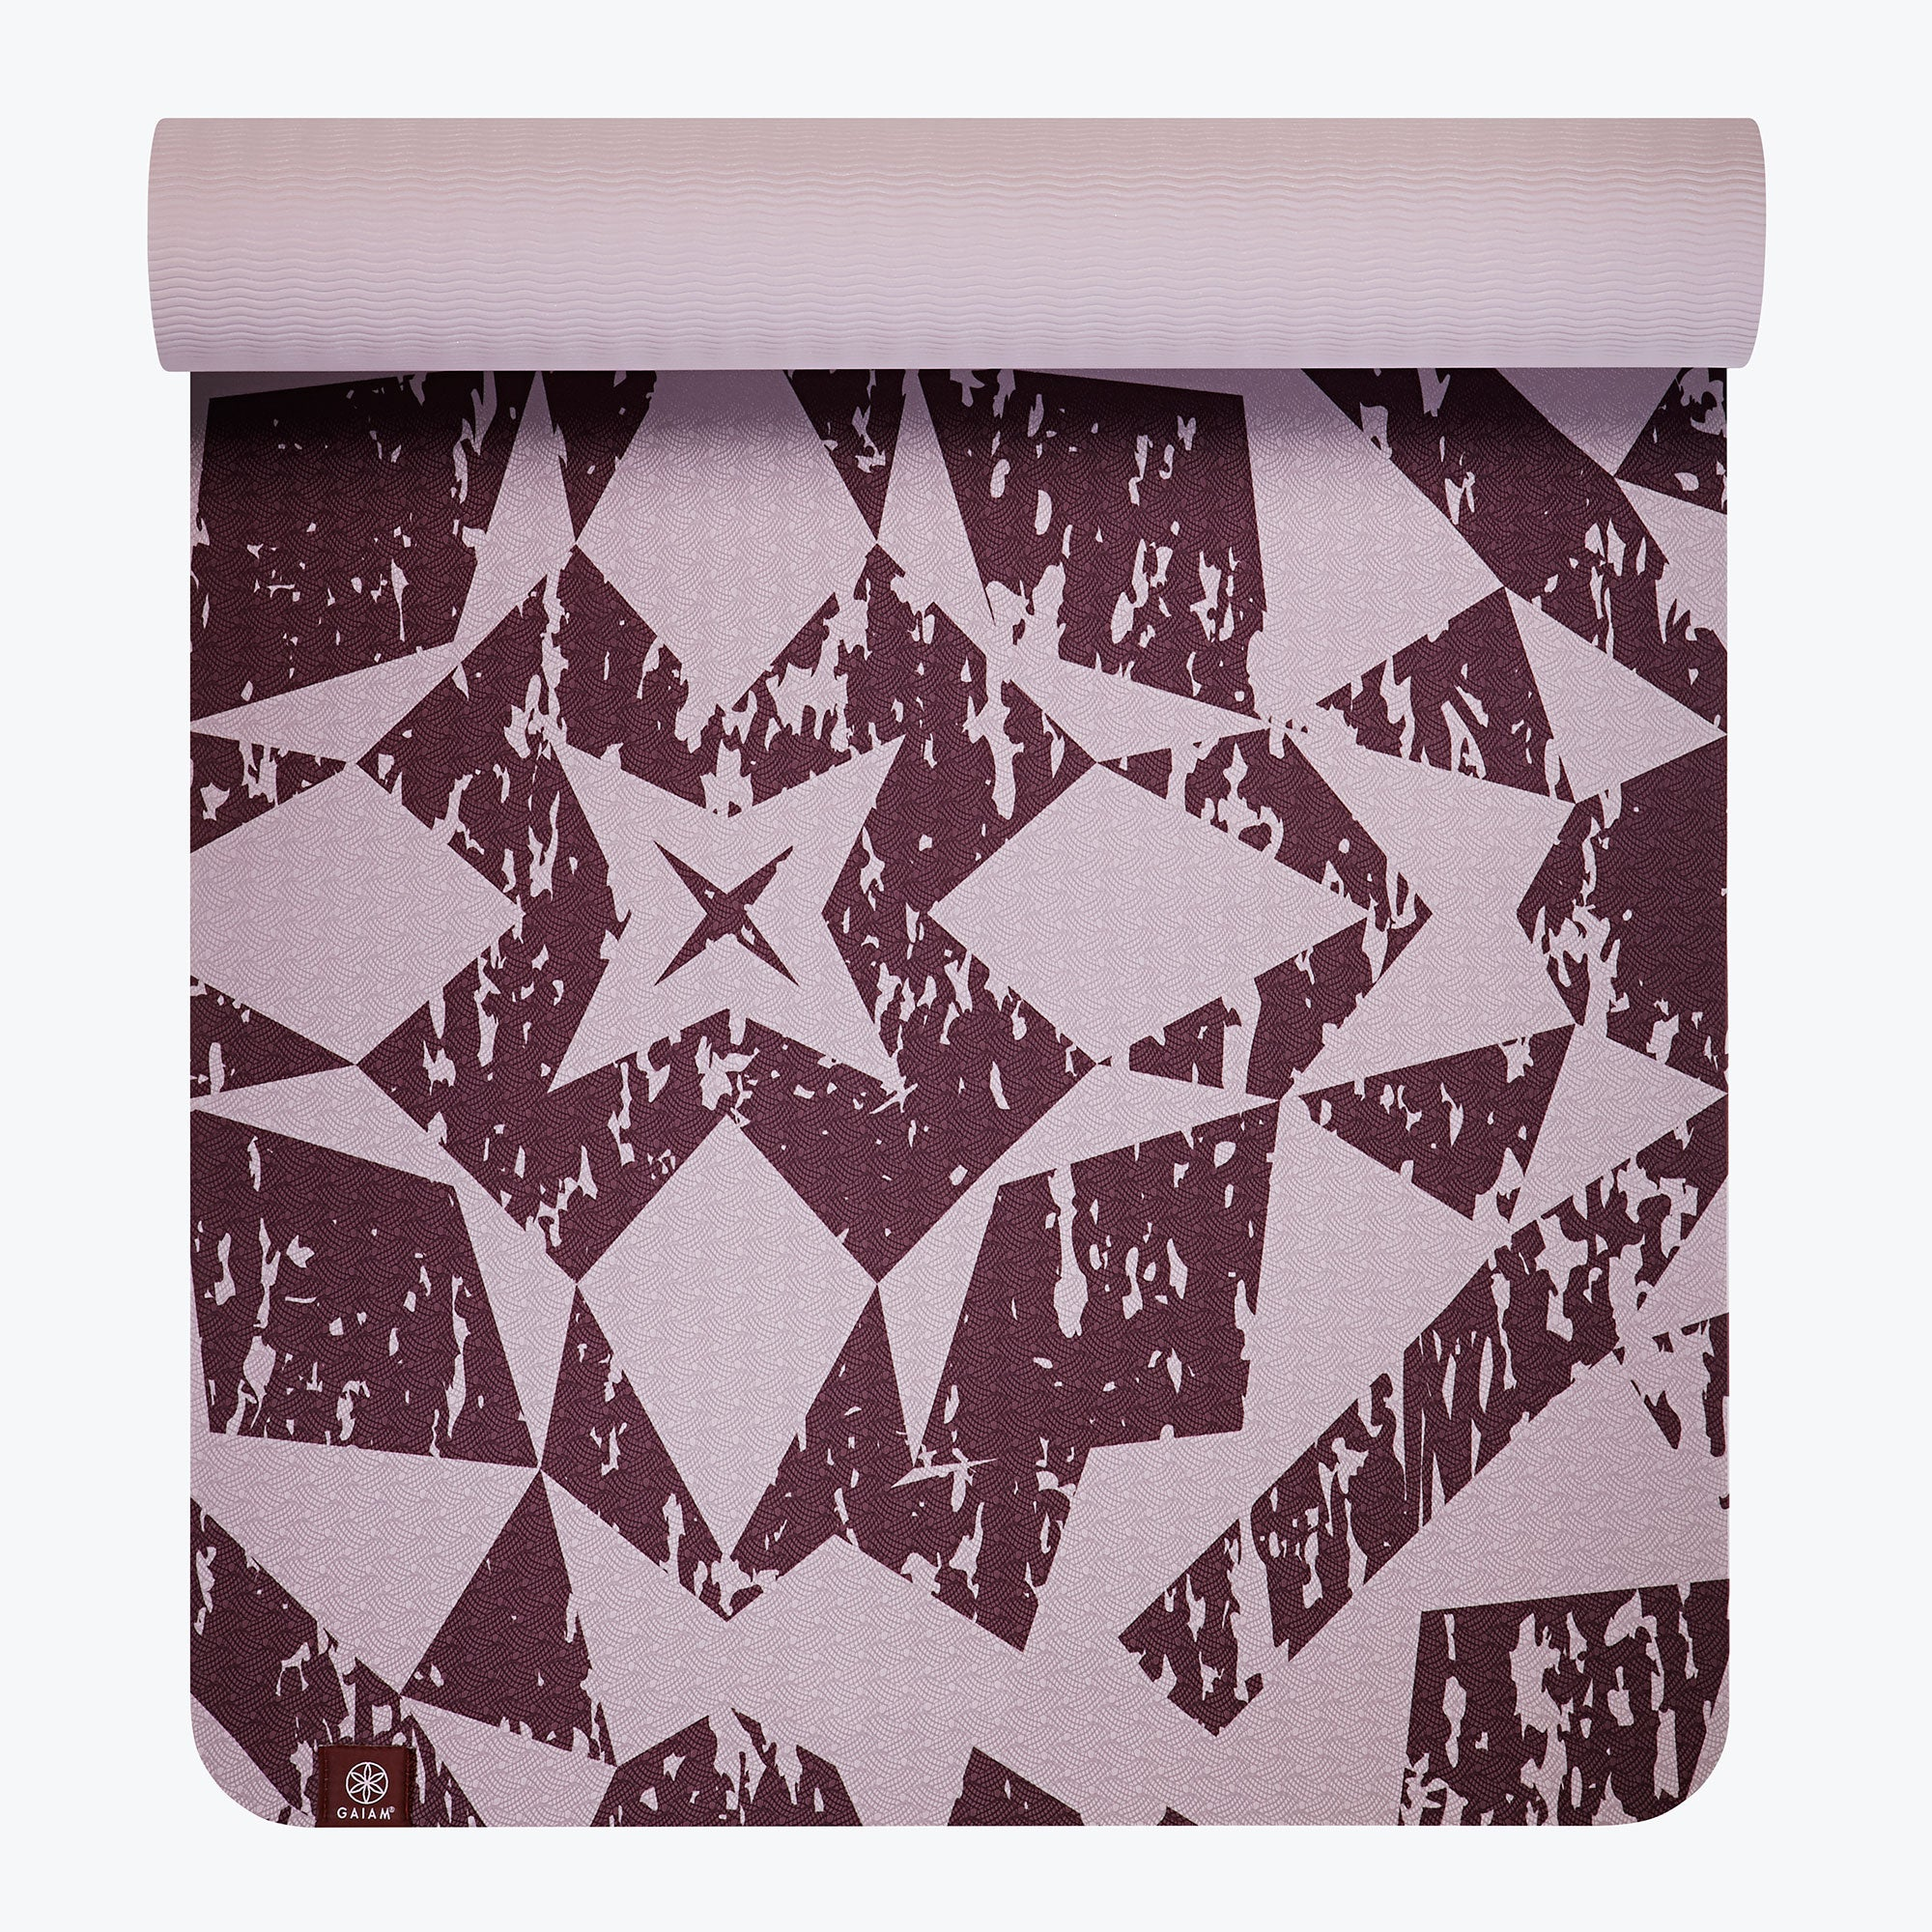 Image of Performance TPE Lilac Printed Yoga Mat (6mm)